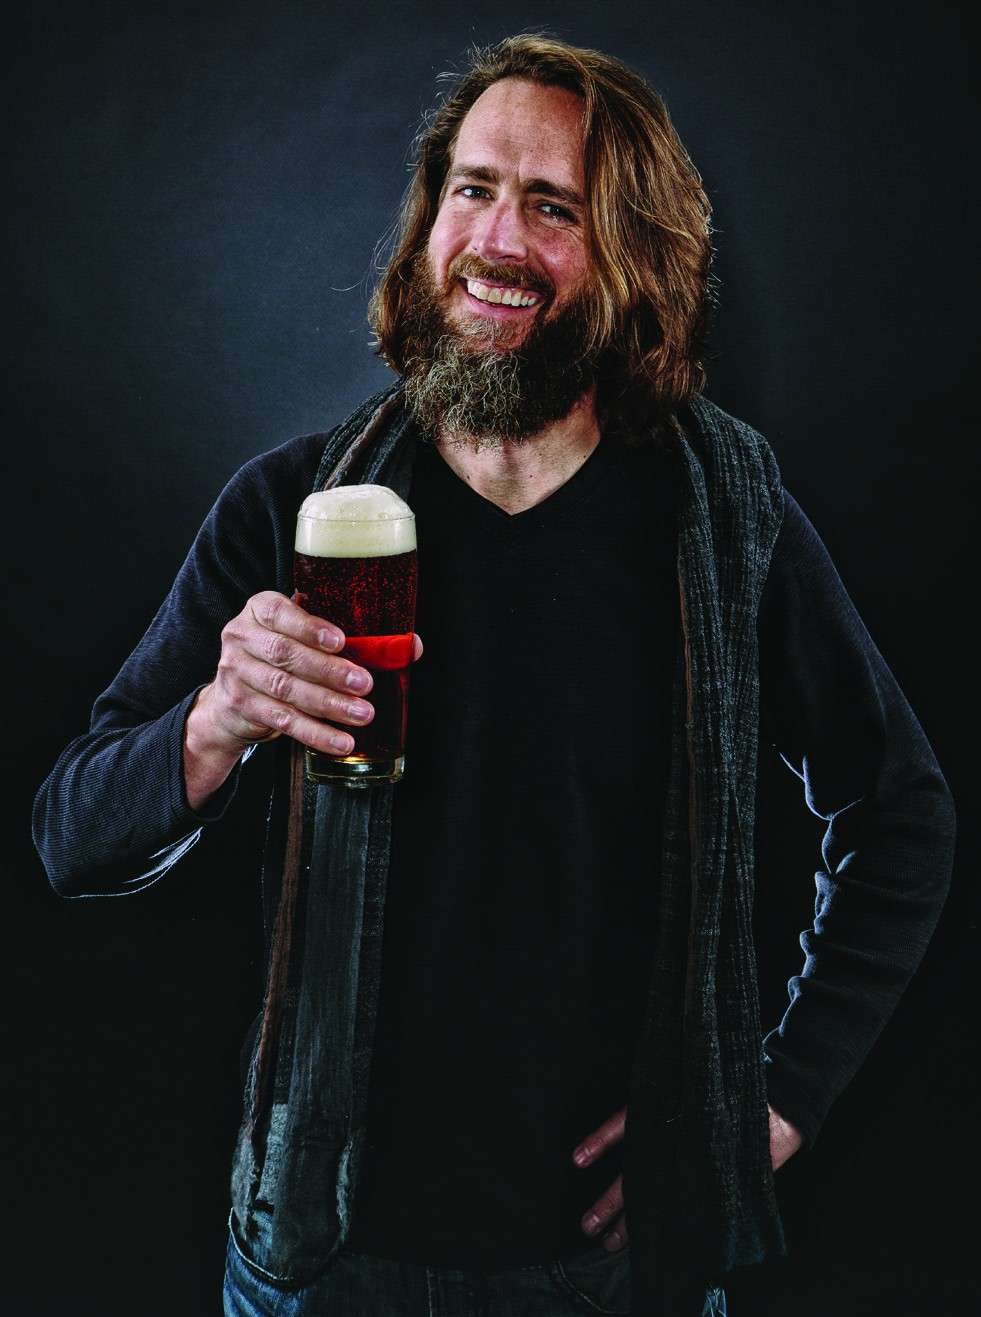 Greg Koch, Co-Founder of Stone Brewing Co.